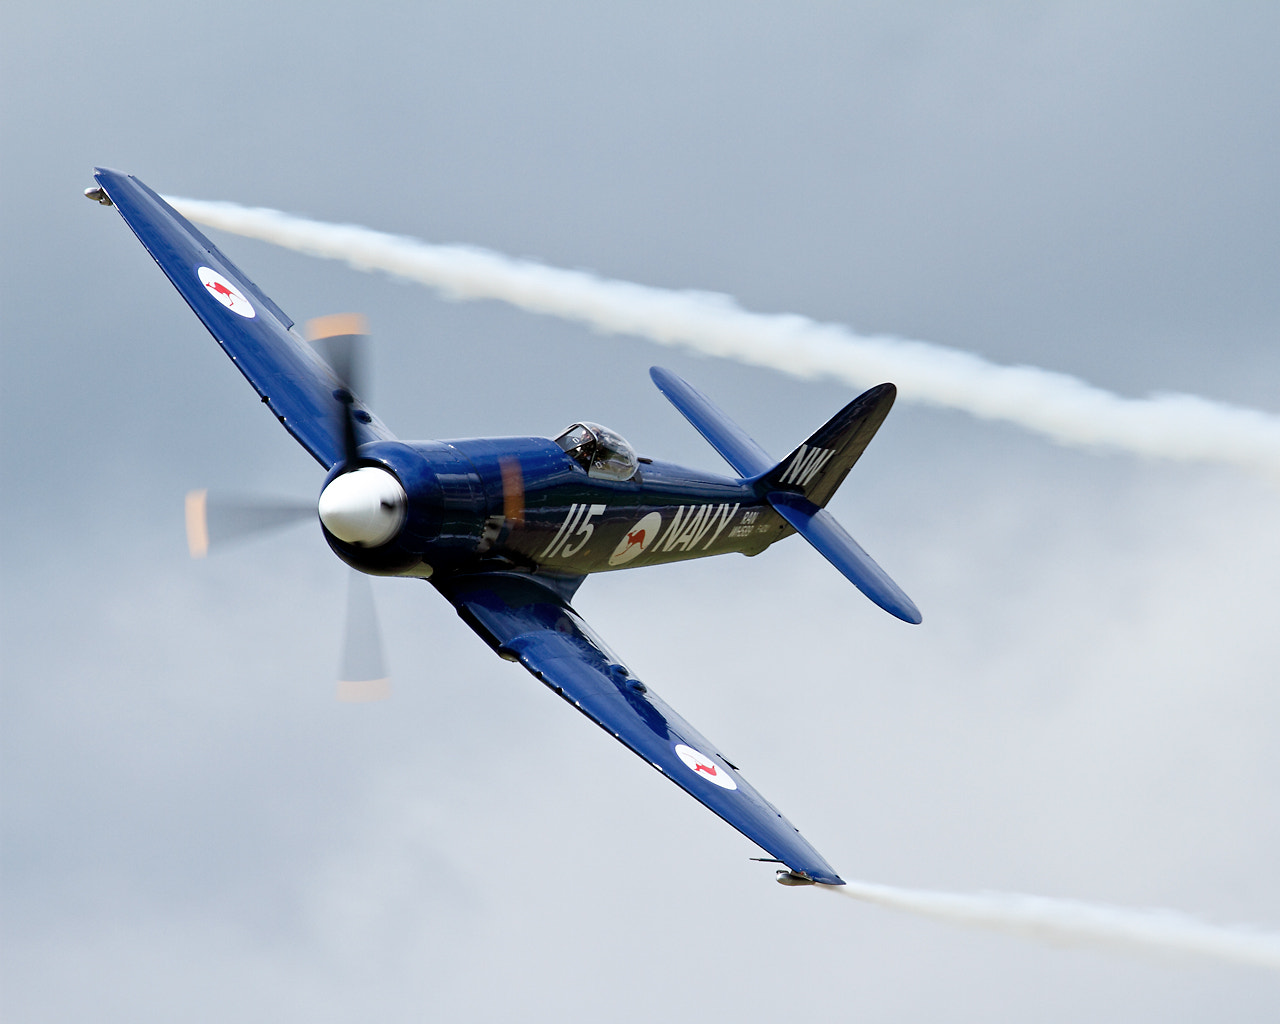 Photograph Seafury @ Duxford Legends by John Hill on 500px